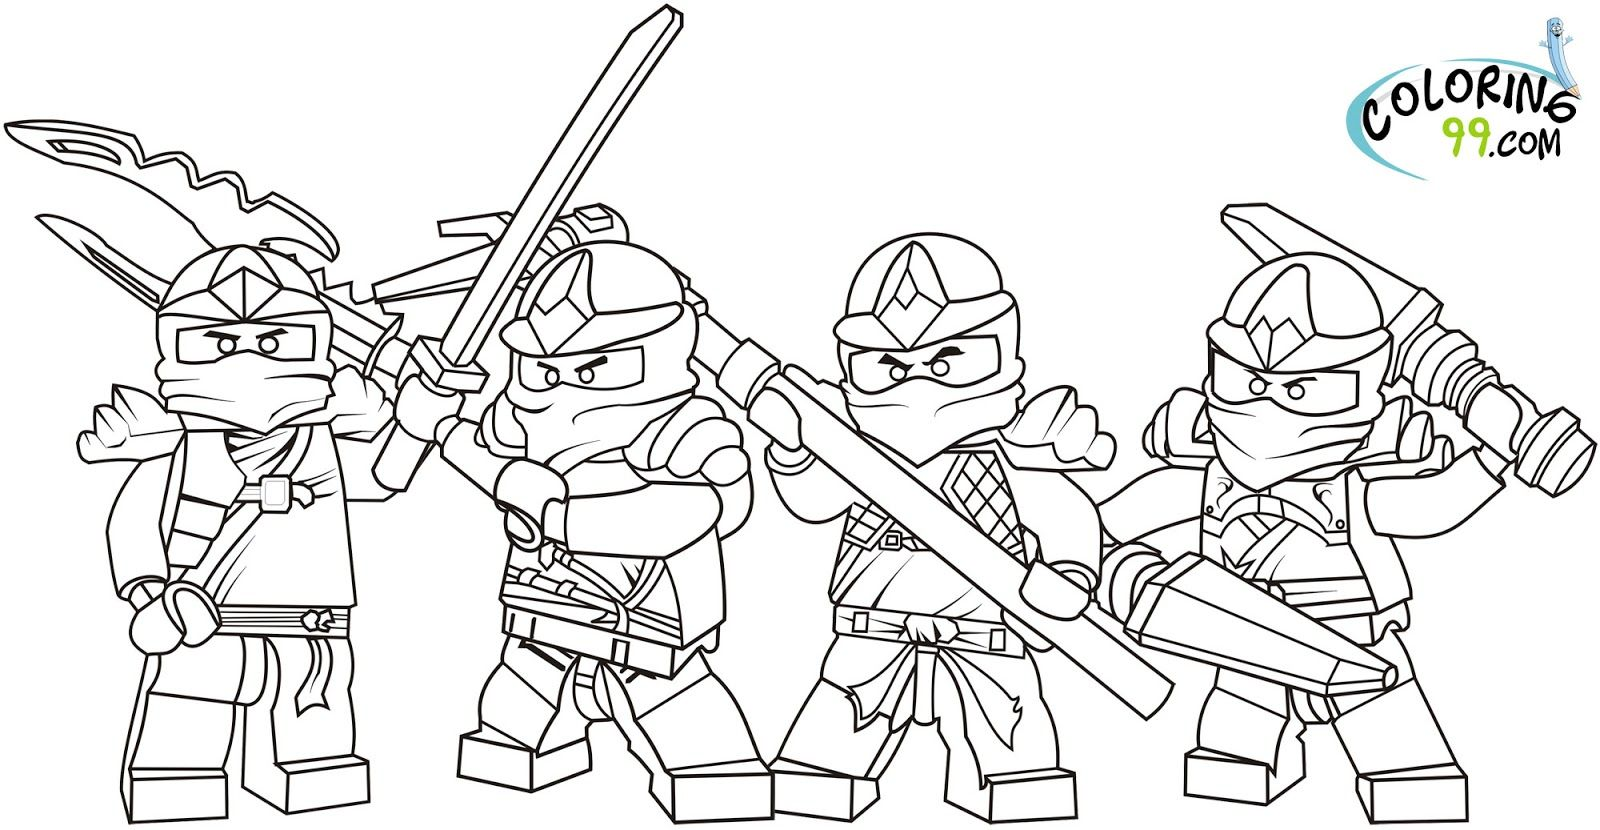 jay ninjago coloring pages.html